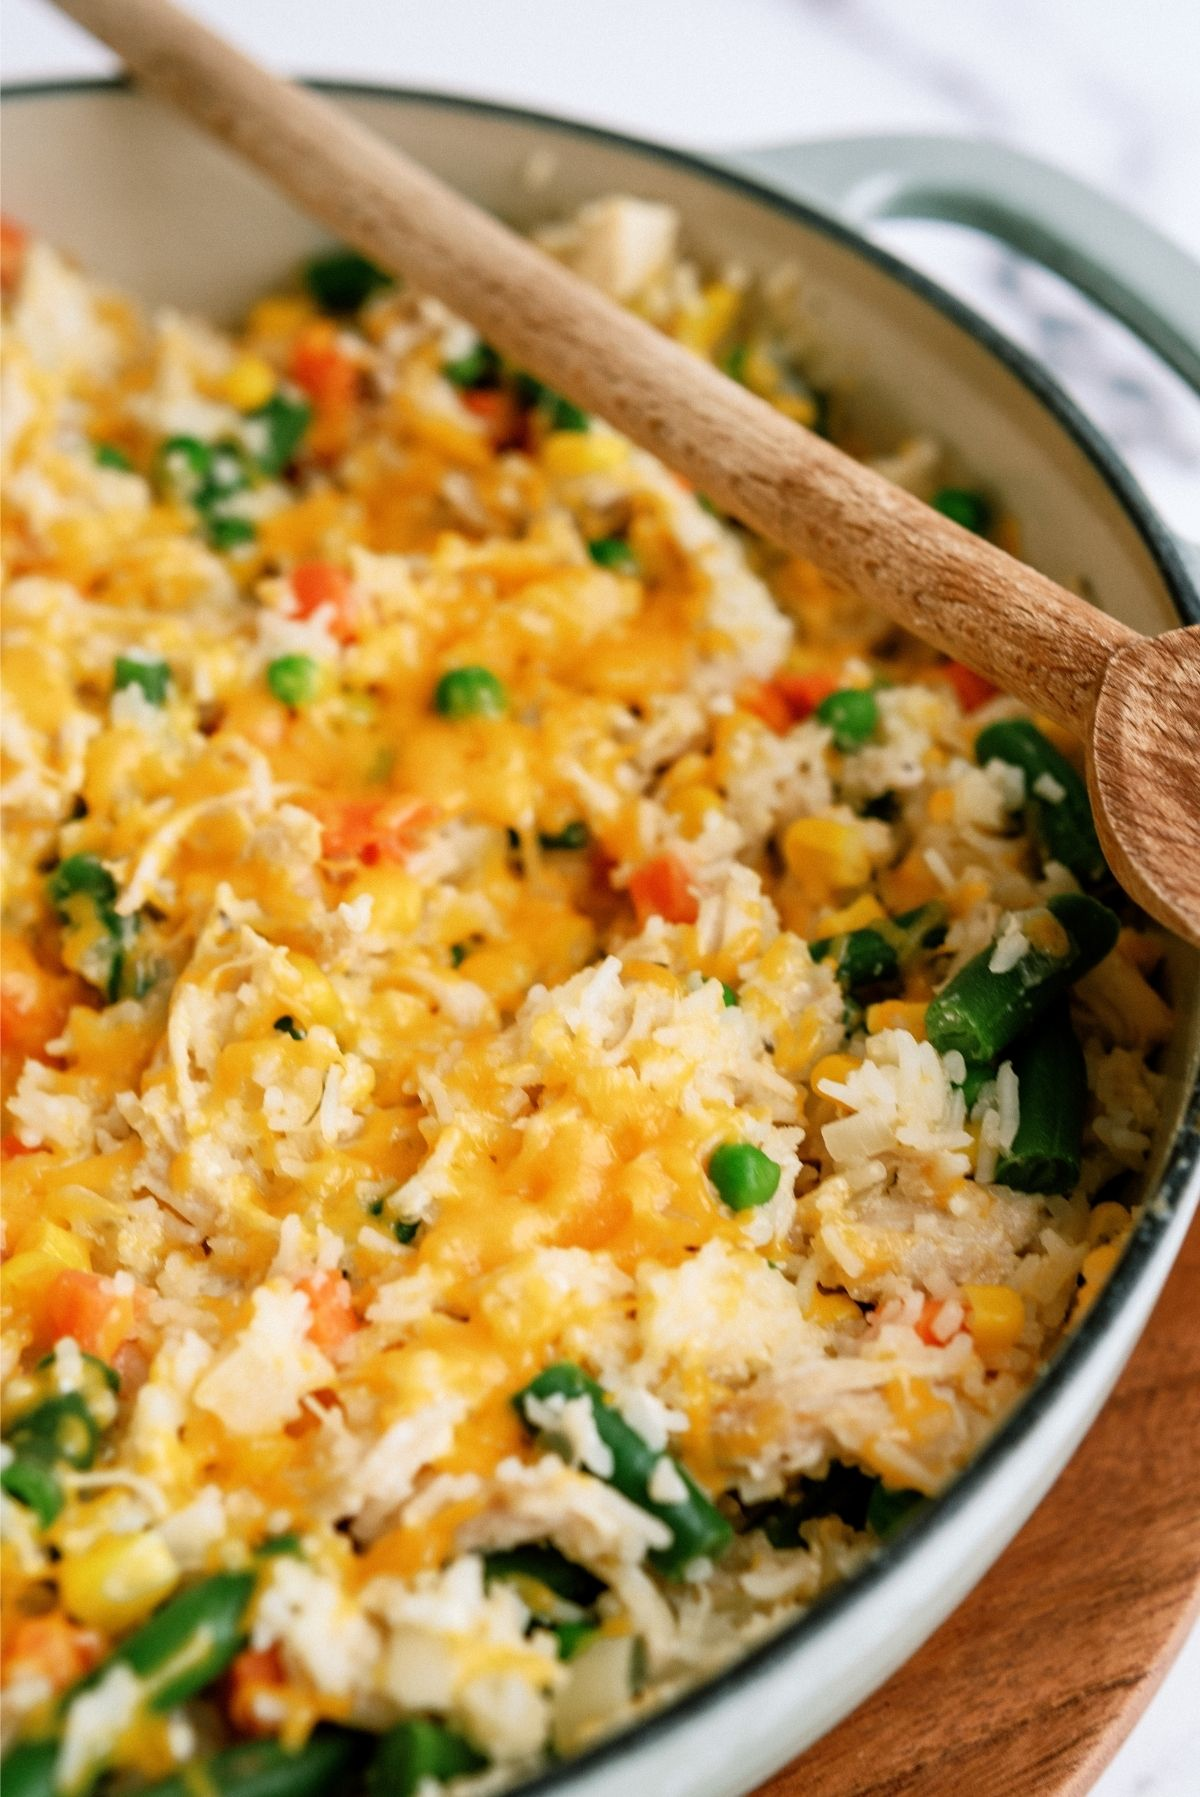 Place lid on pot to melt cheese for Creamy Chicken and Rice Casserole Skillet